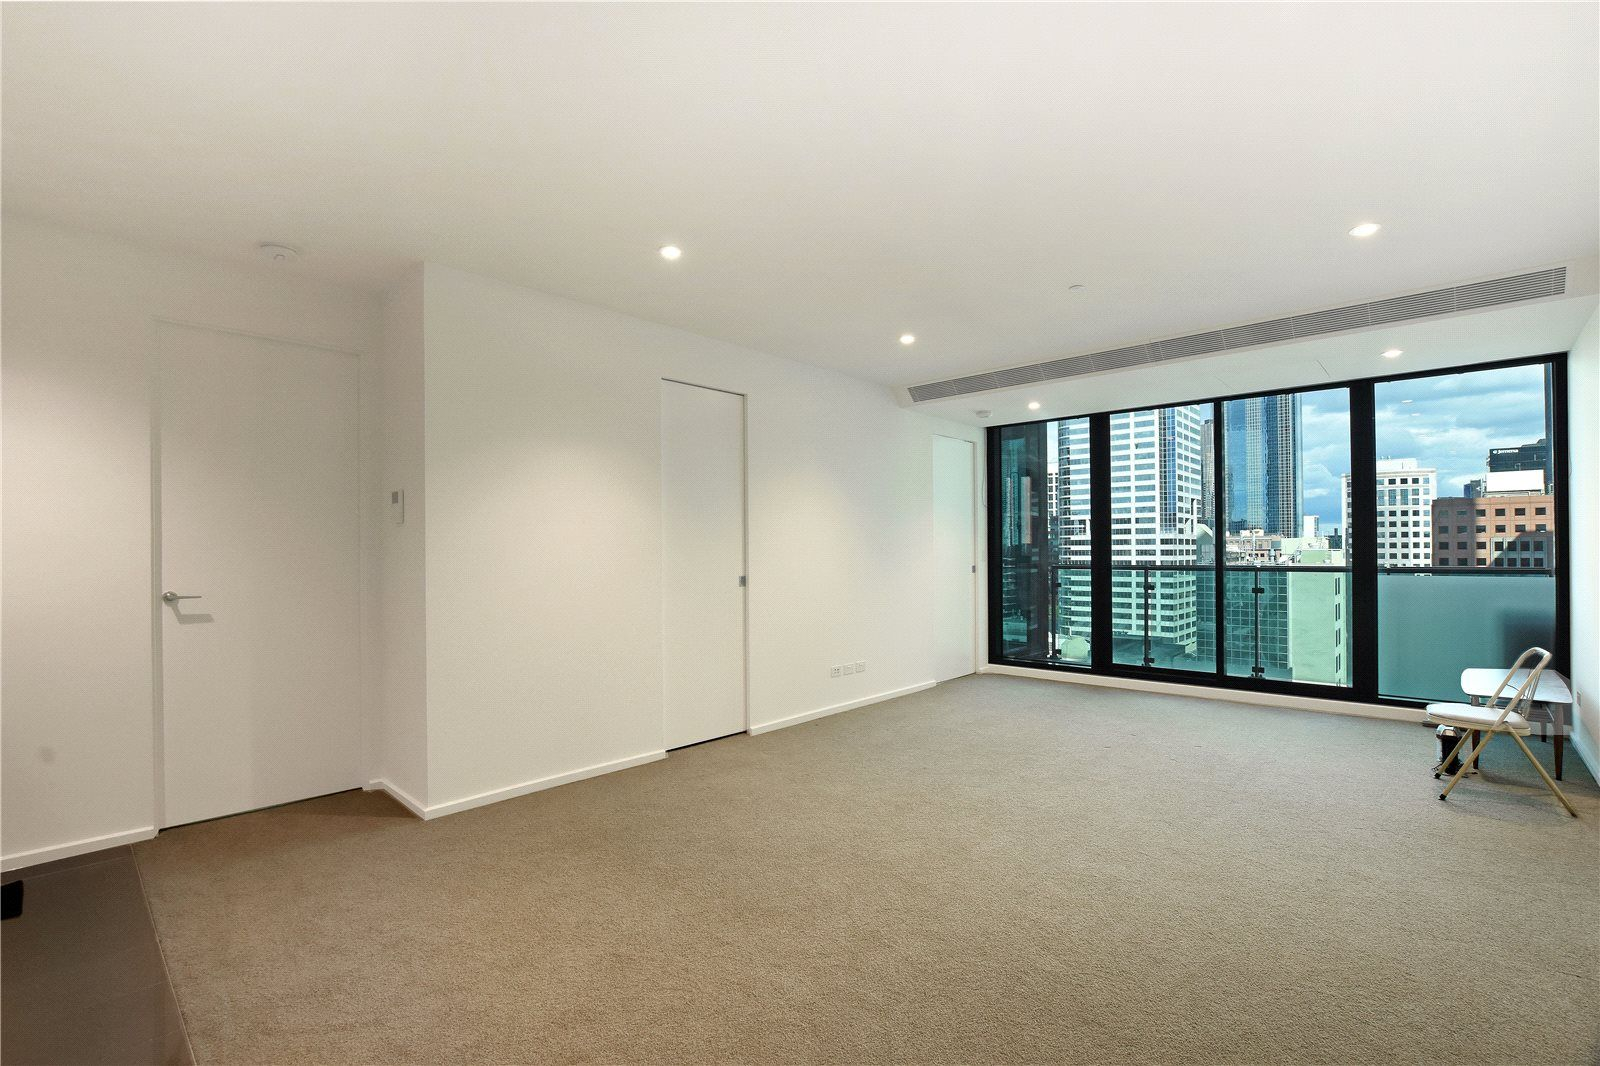 Australis: Partially Furnished Two Bedroom Apartment in a Perfect City Location!